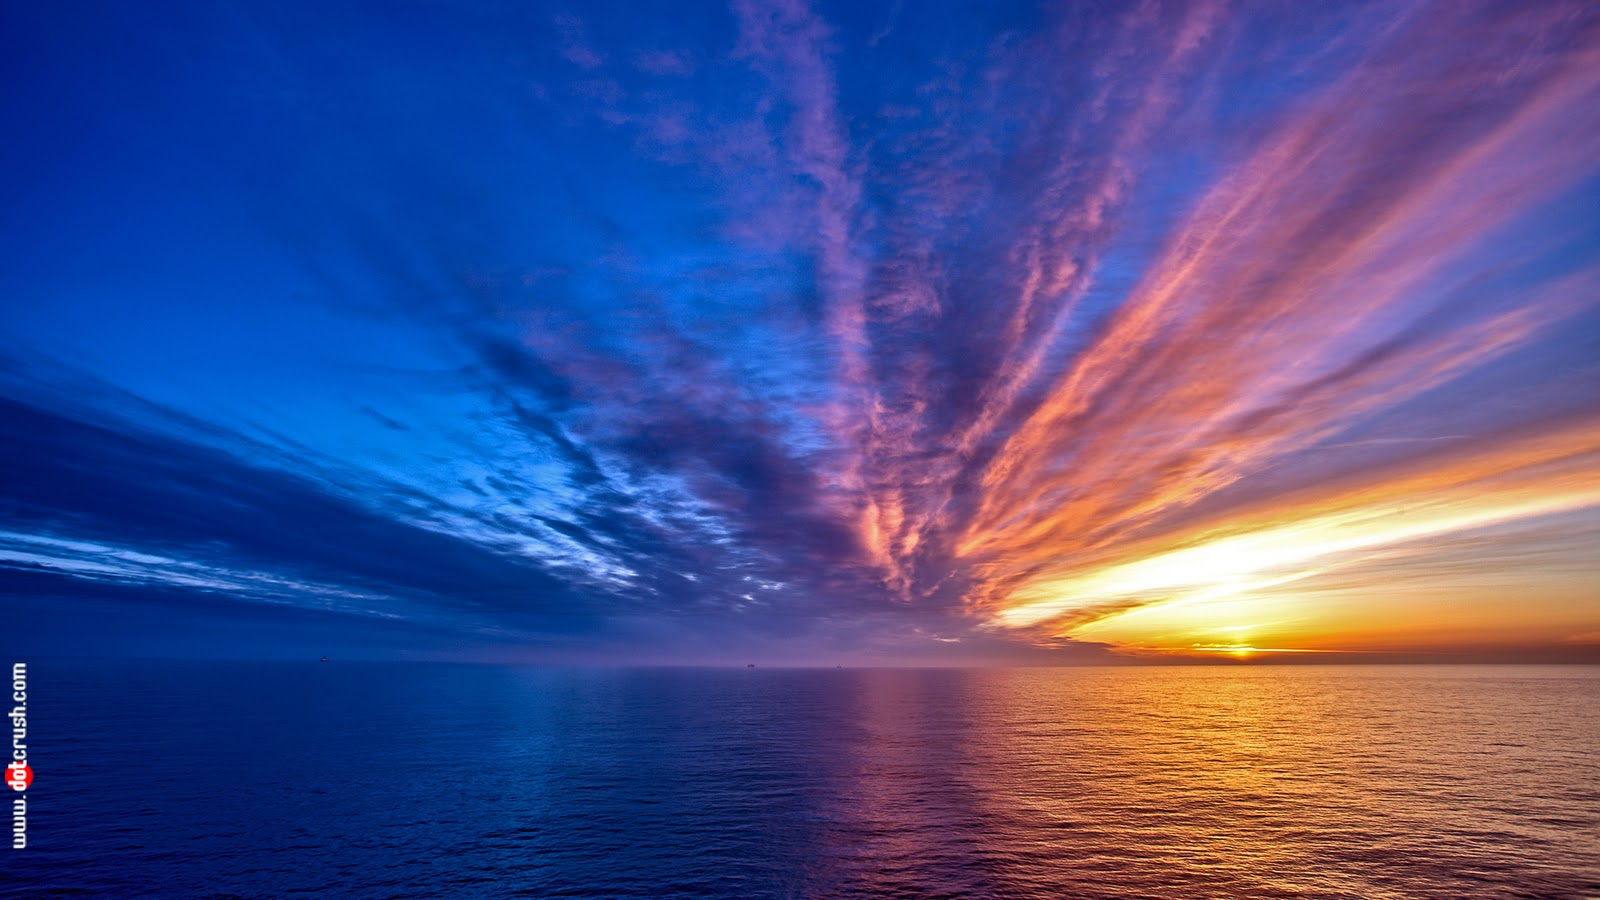 Desktop Backround Wallpapers Widescreen 2011 Collections | Wallpapers Factory to make your ...